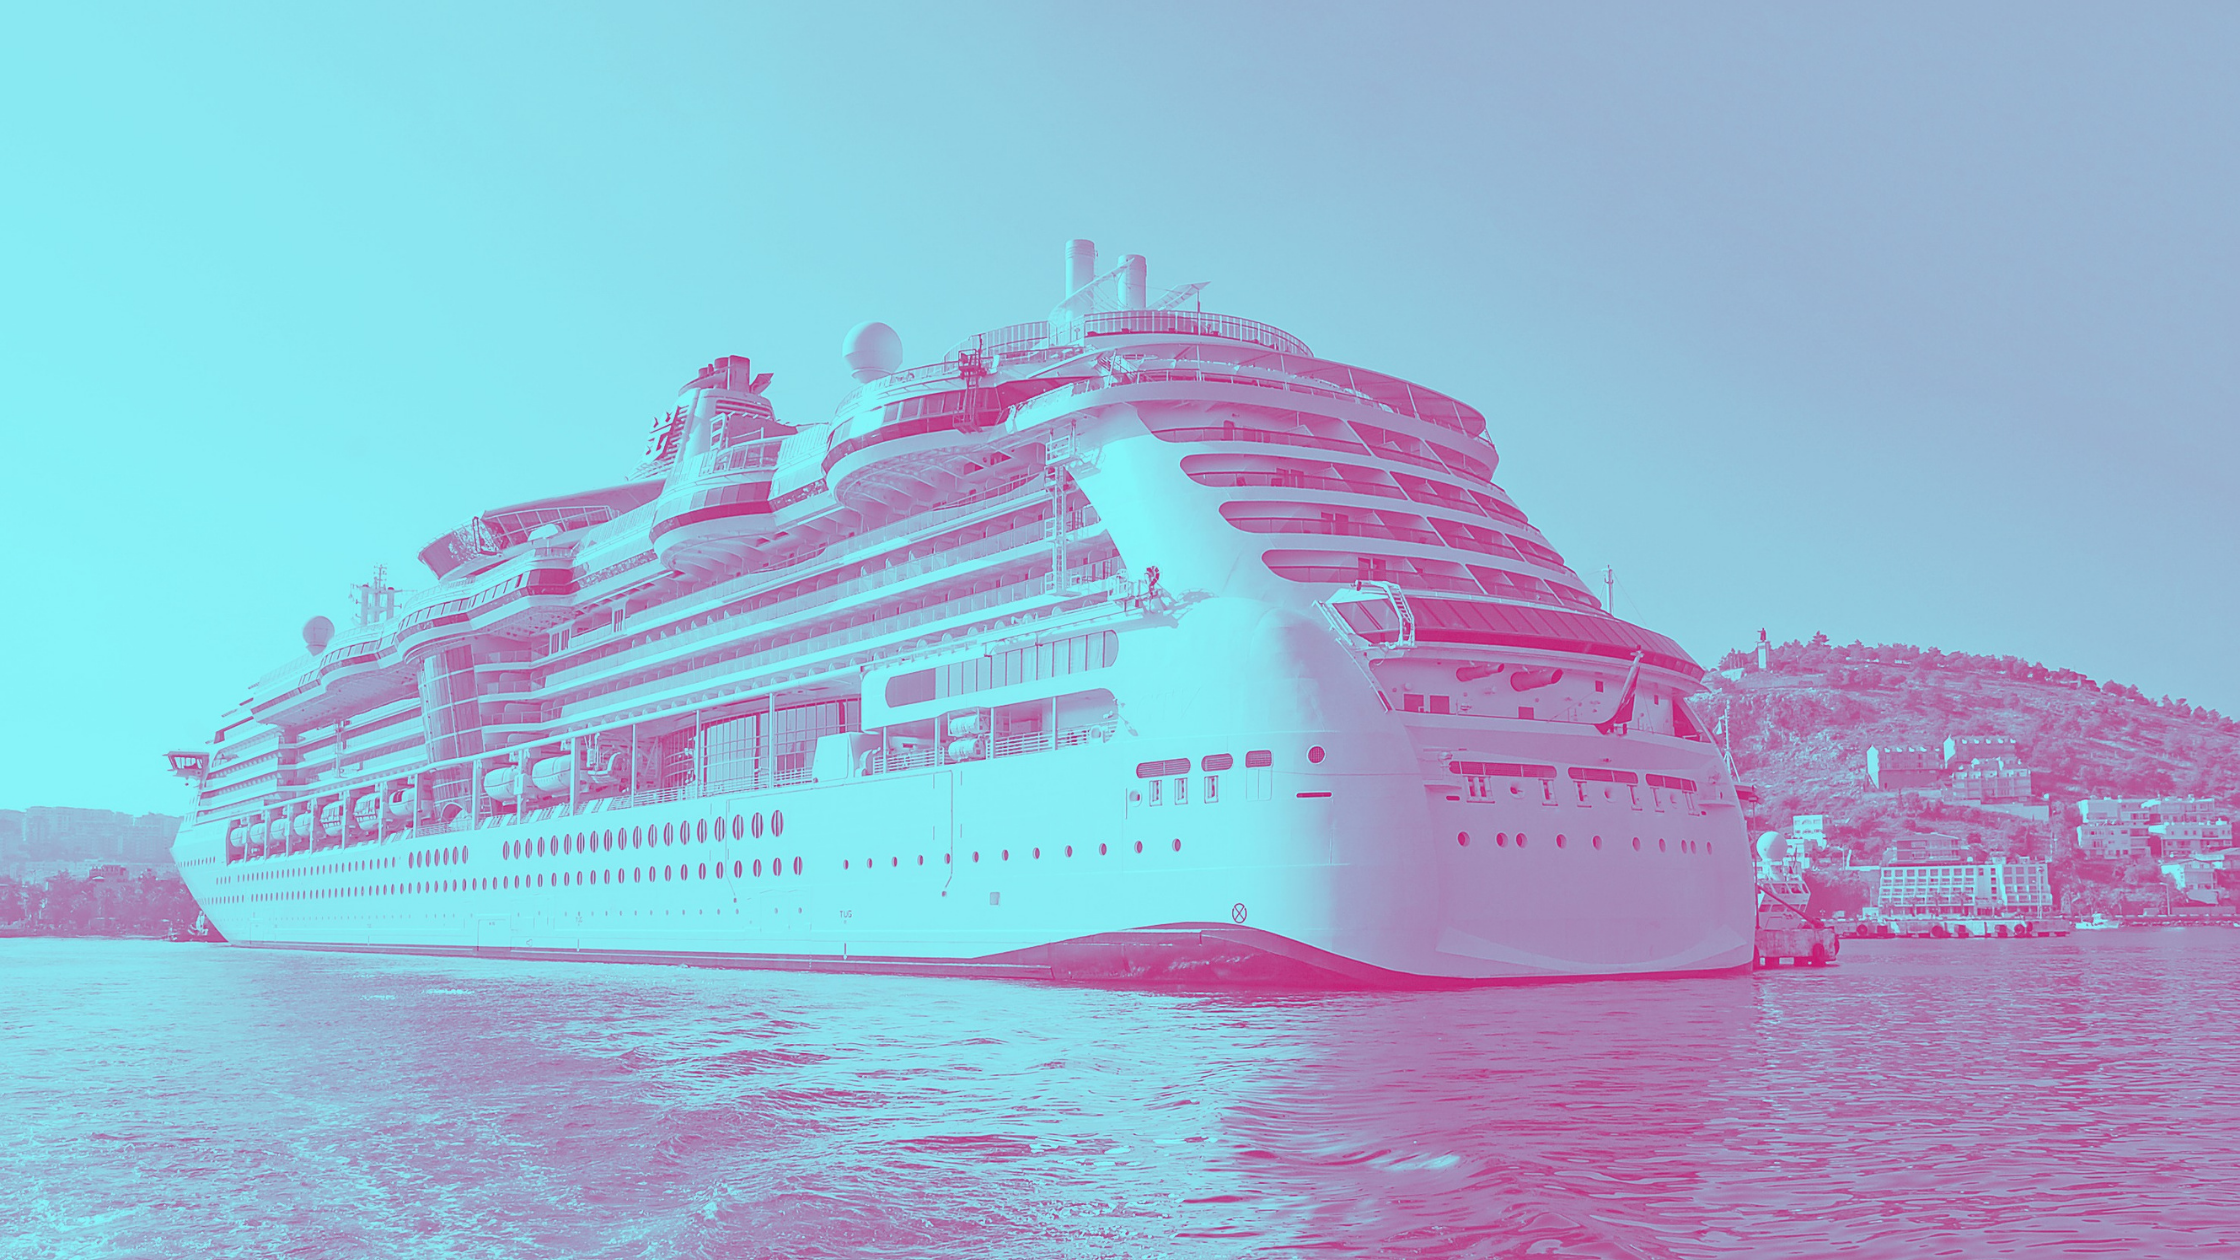 COVID's rogue wave pummeled cruise lines, here's how they're recovering